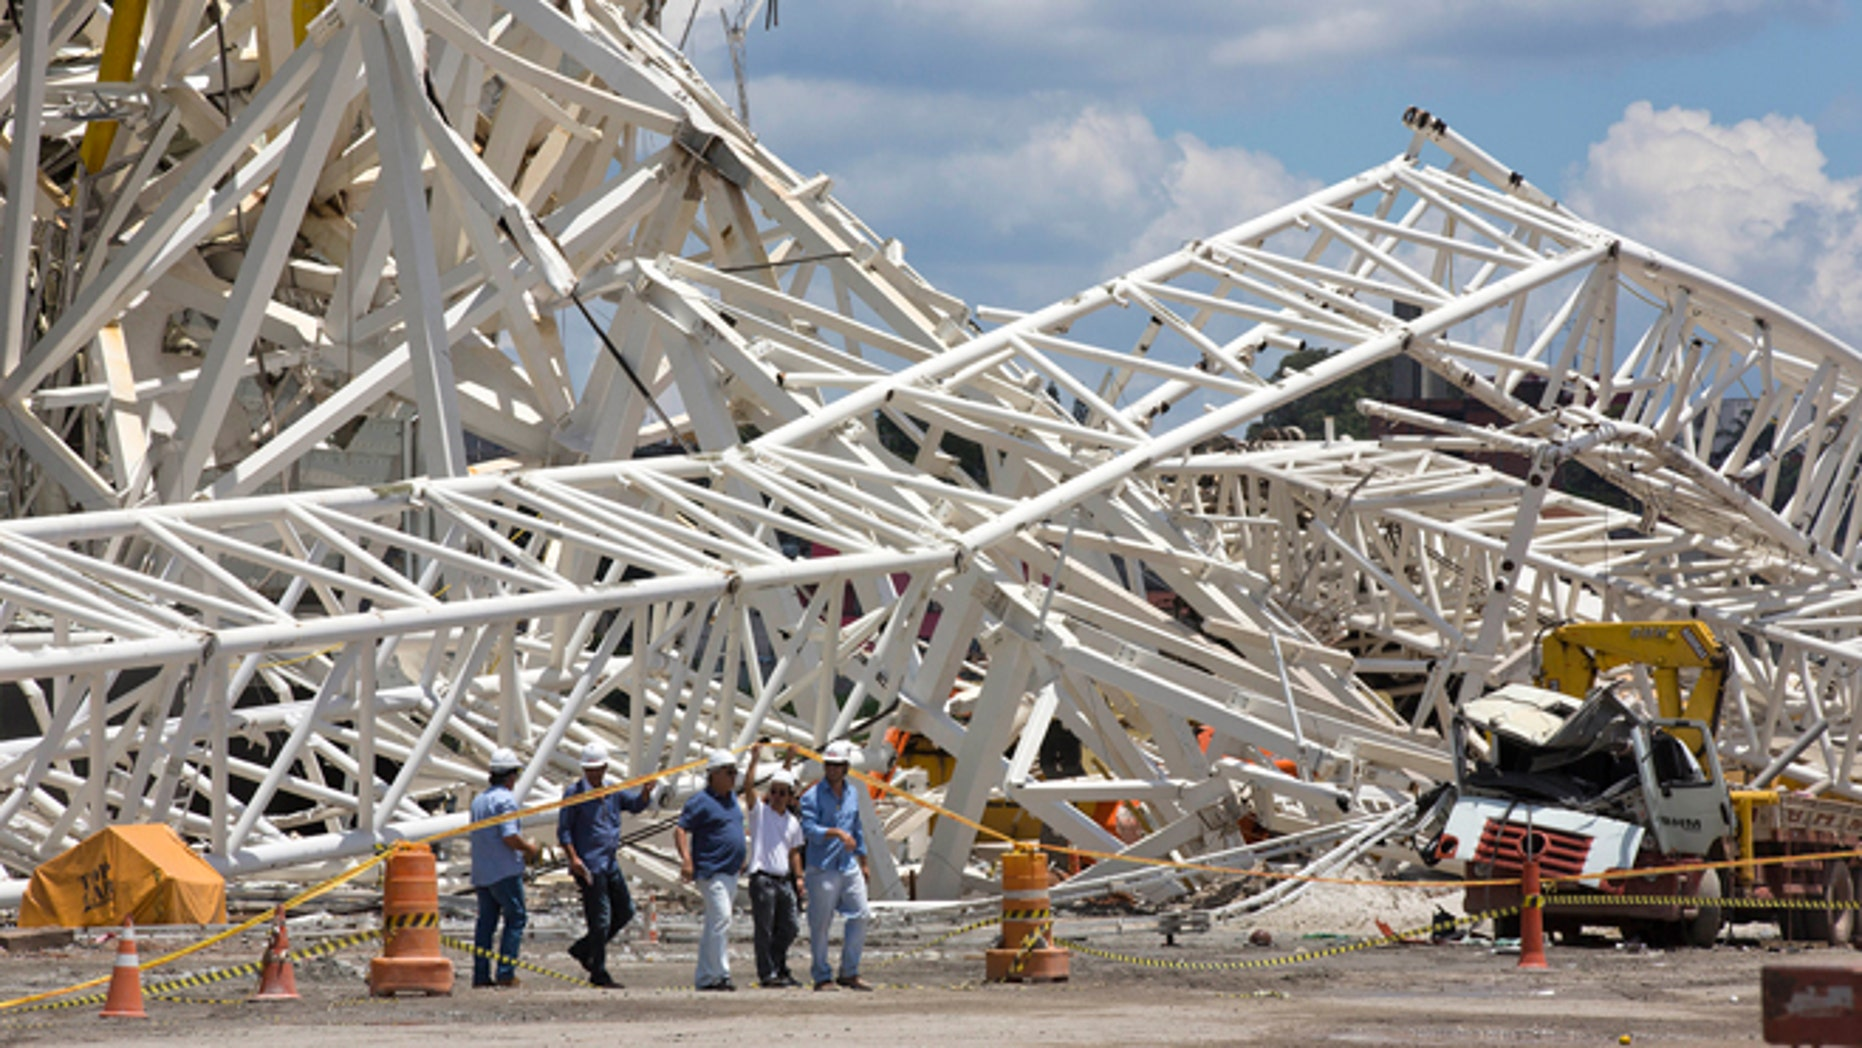 Civil defense and policemen inspect the damage of an accident at the Arena Corinthians, known locally as the Itaquerao, that will host the 2014 World Cup in Sao Paulo, Brazil, Thursday, Nov. 28, 2013. Two workers were killed when a crane crashed into a 500-ton metal structure that toppled over part of the stadium Wednesday, aggravating already urgent worries that Brazil won't be ready for soccer's showcase event next year. (AP Photo/Andre Penner)